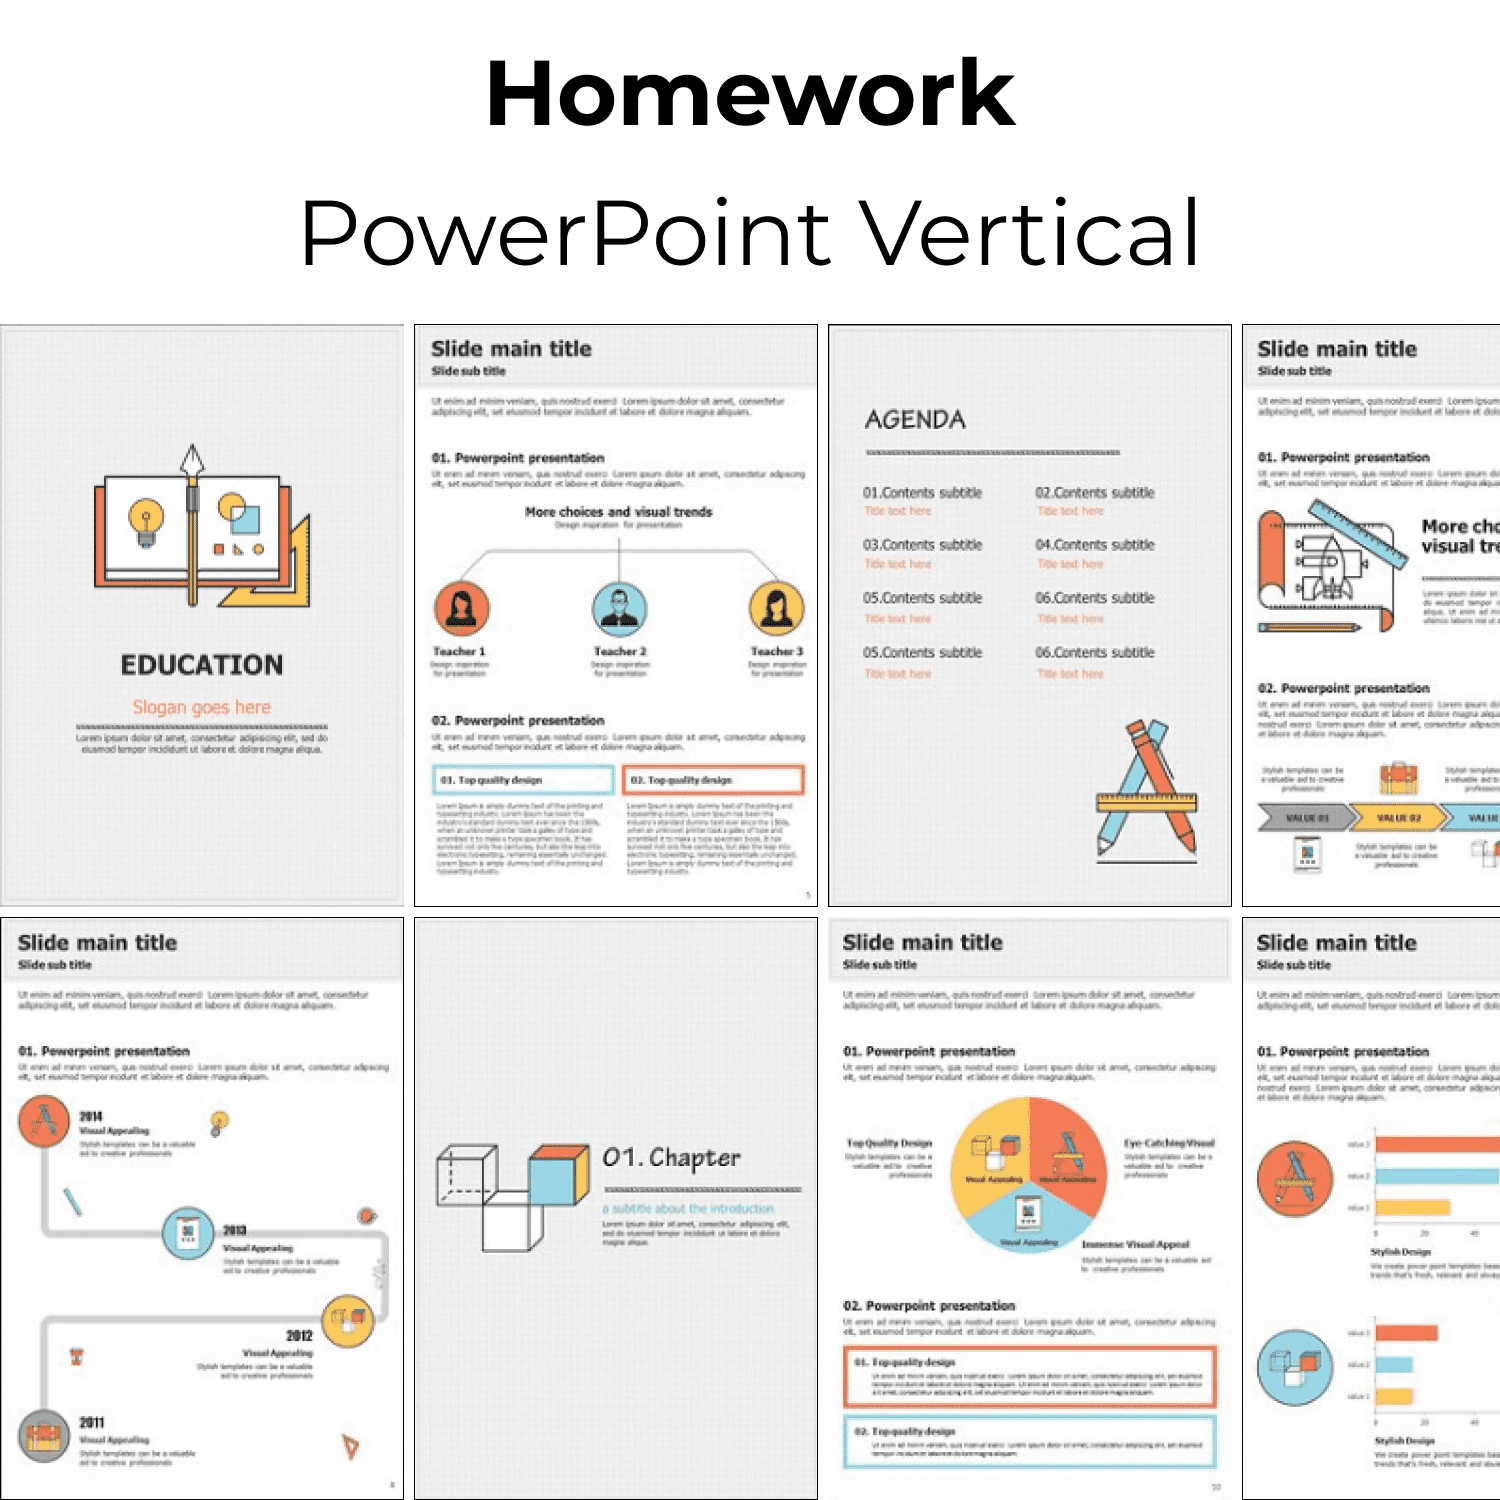 Homework PowerPoint Vertical cover image.